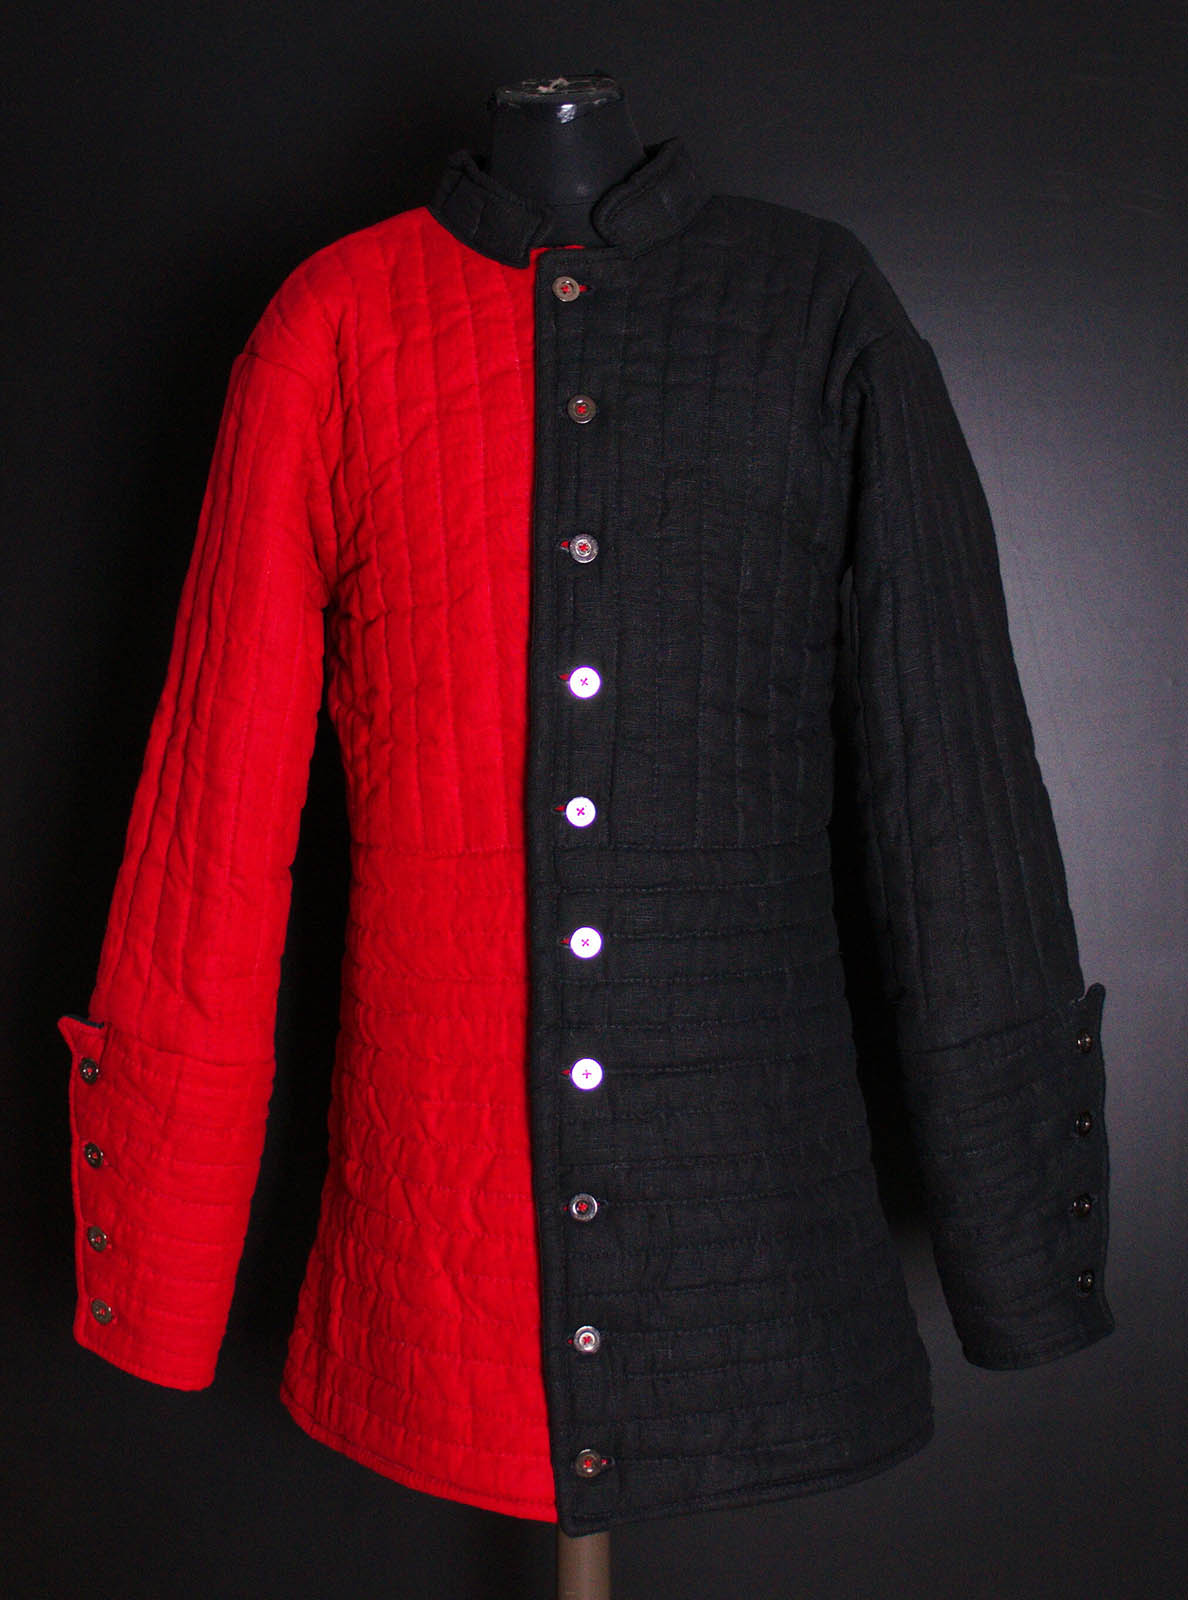 Gambeson, two colored gambeson, gambeson by Steel Mastery